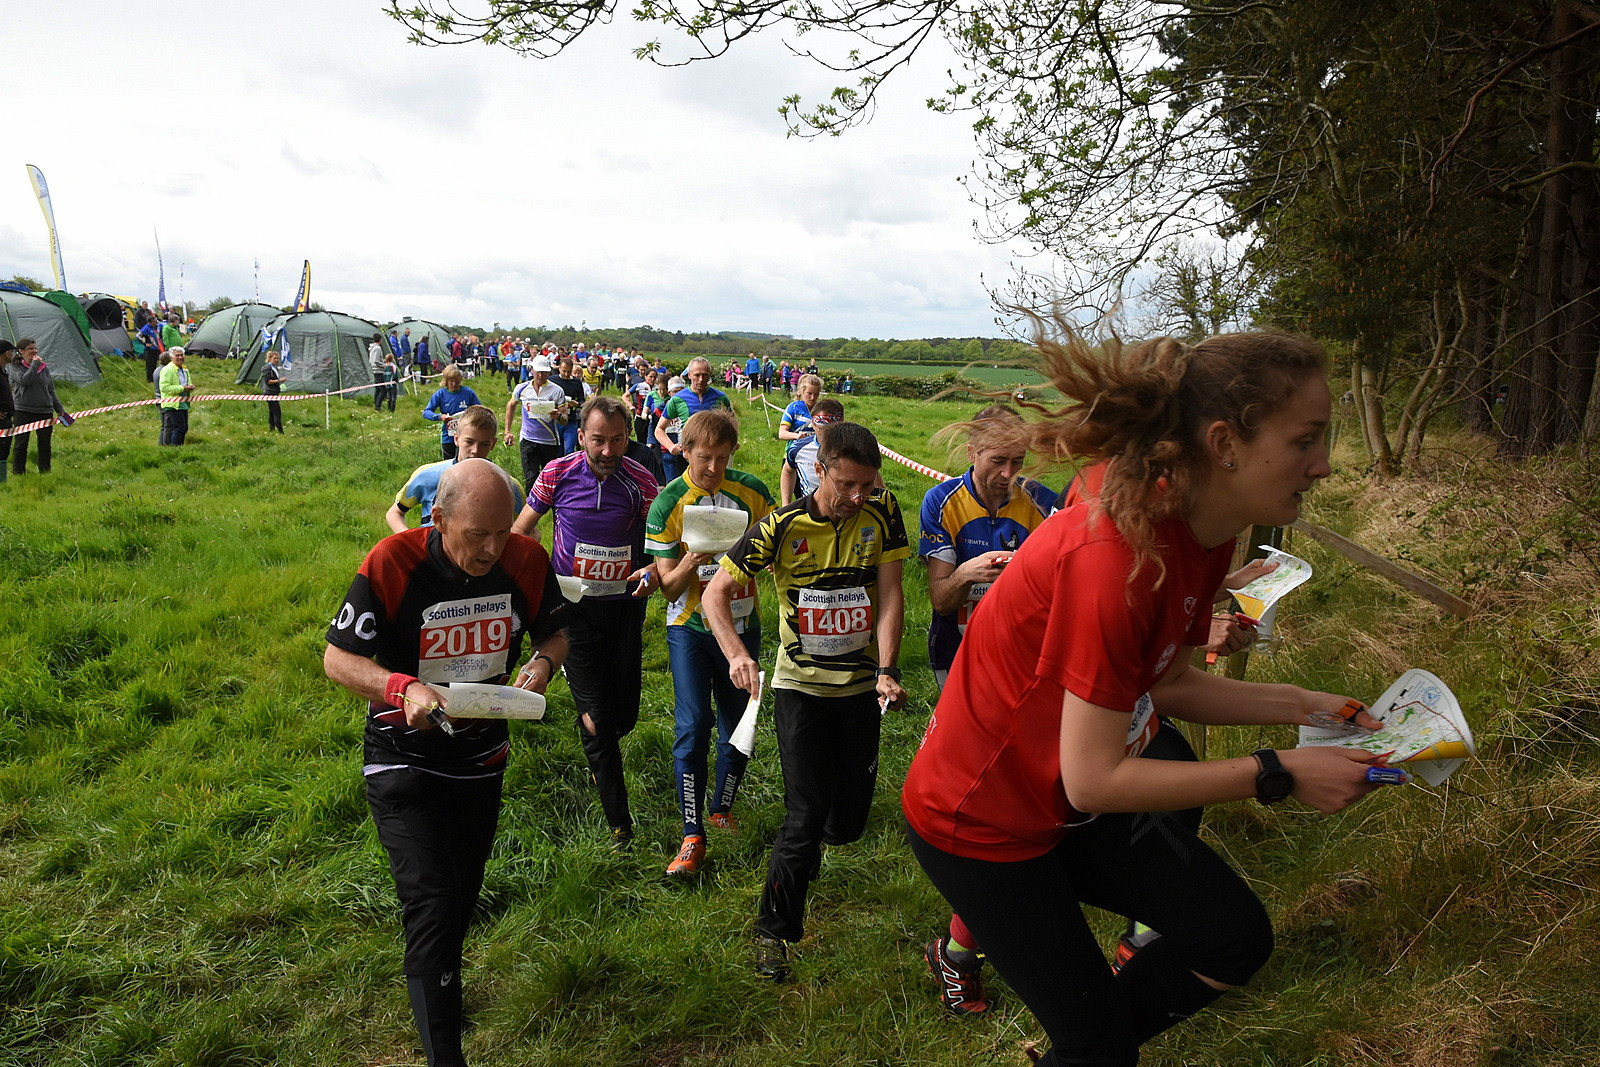 Championships are a main Scottish sports event for orienteers